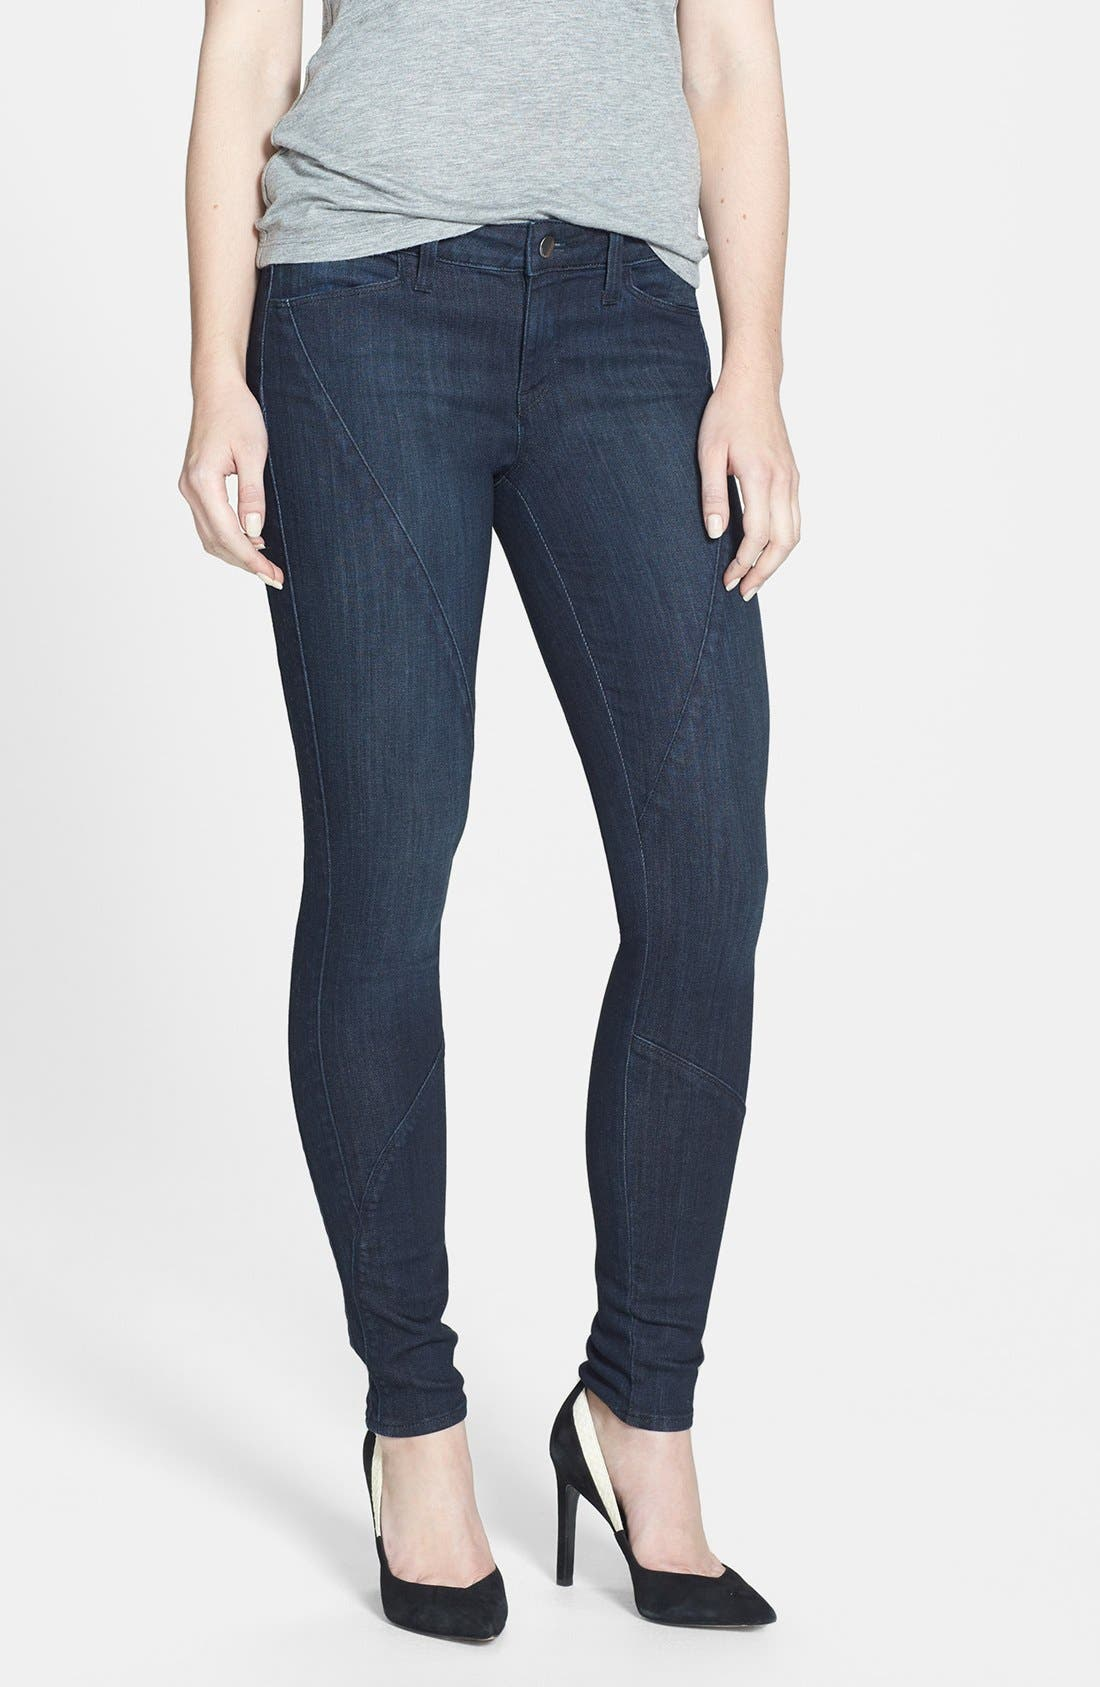 Main Image - Genetic 'Semira' Seamed Cigarette Skinny Jeans (Impulse)